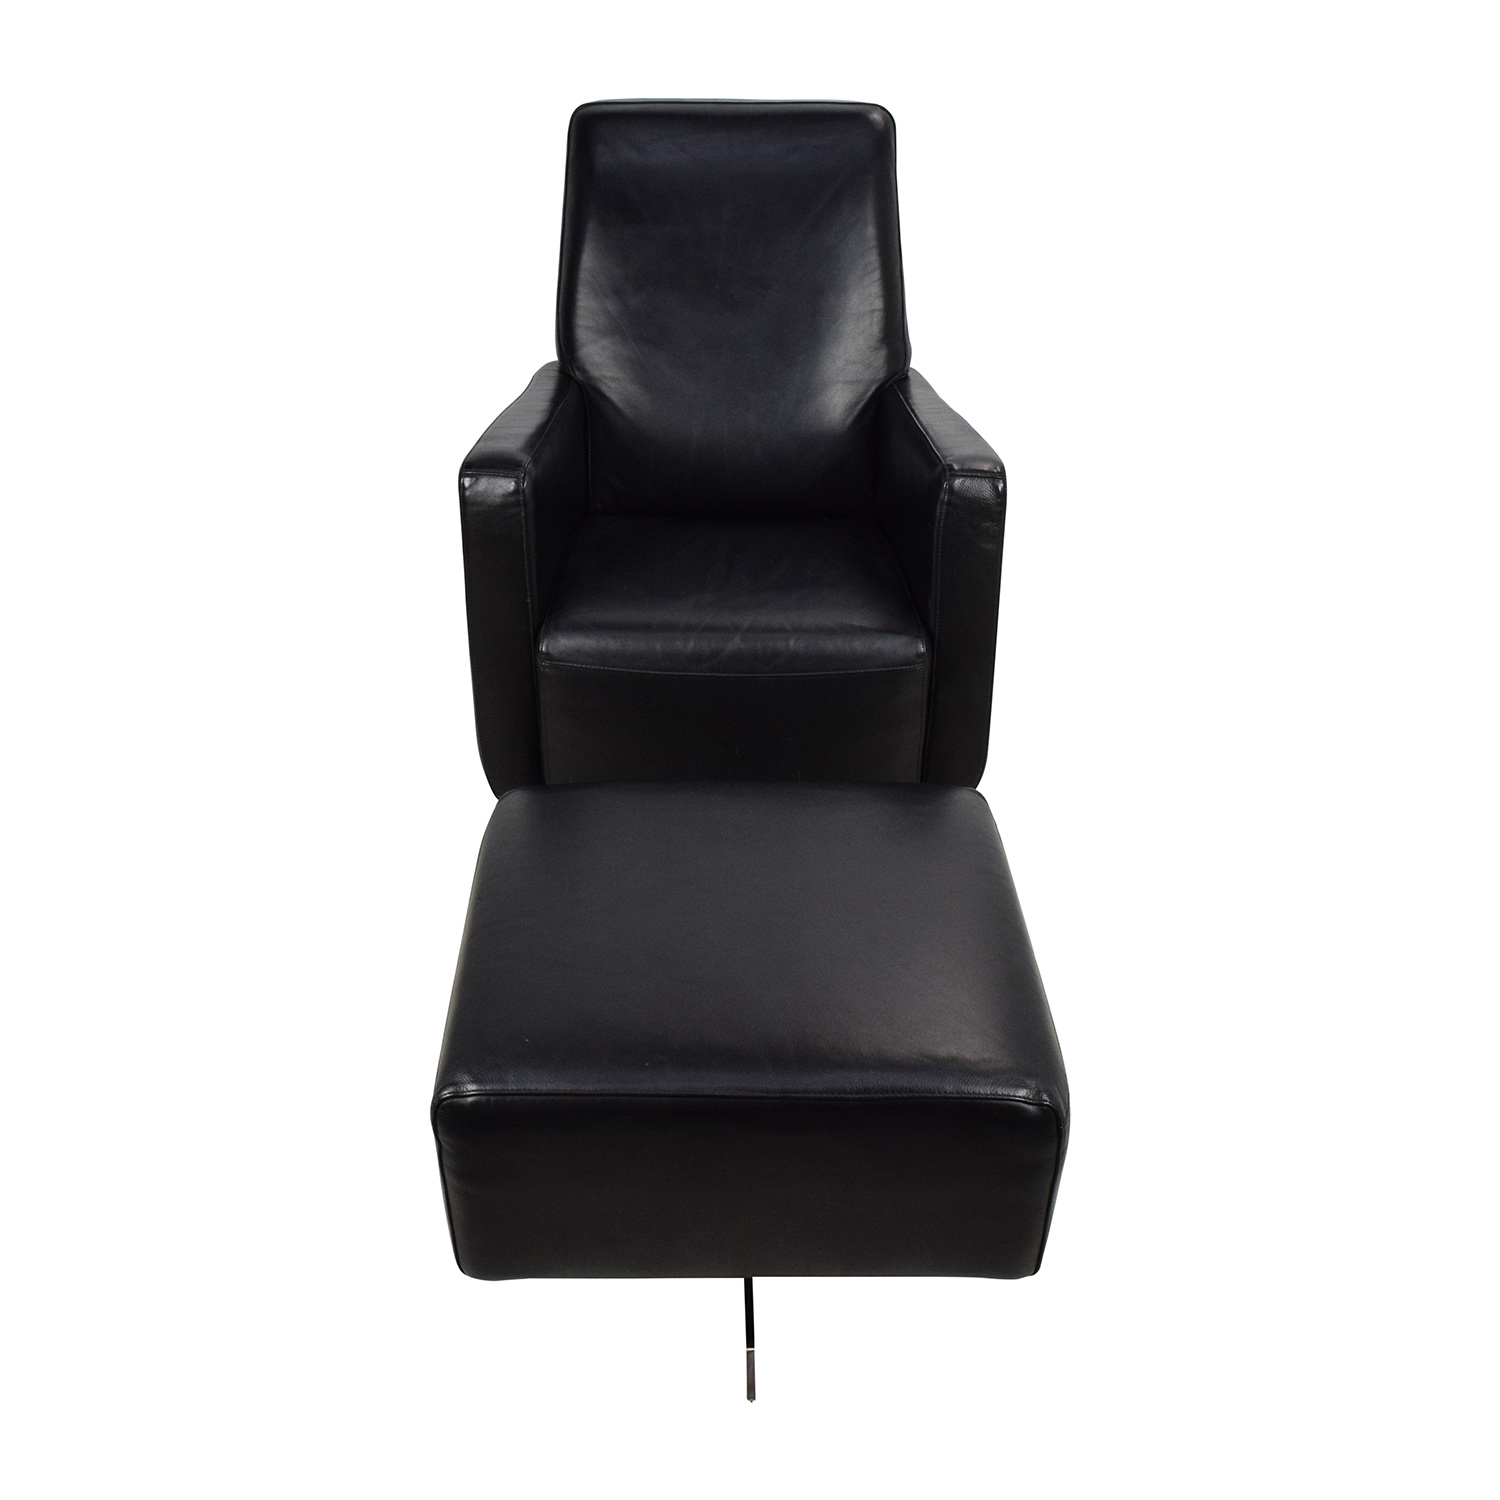 Natuzzi Black Leather Swivel Chair with Ottoman / Sofas